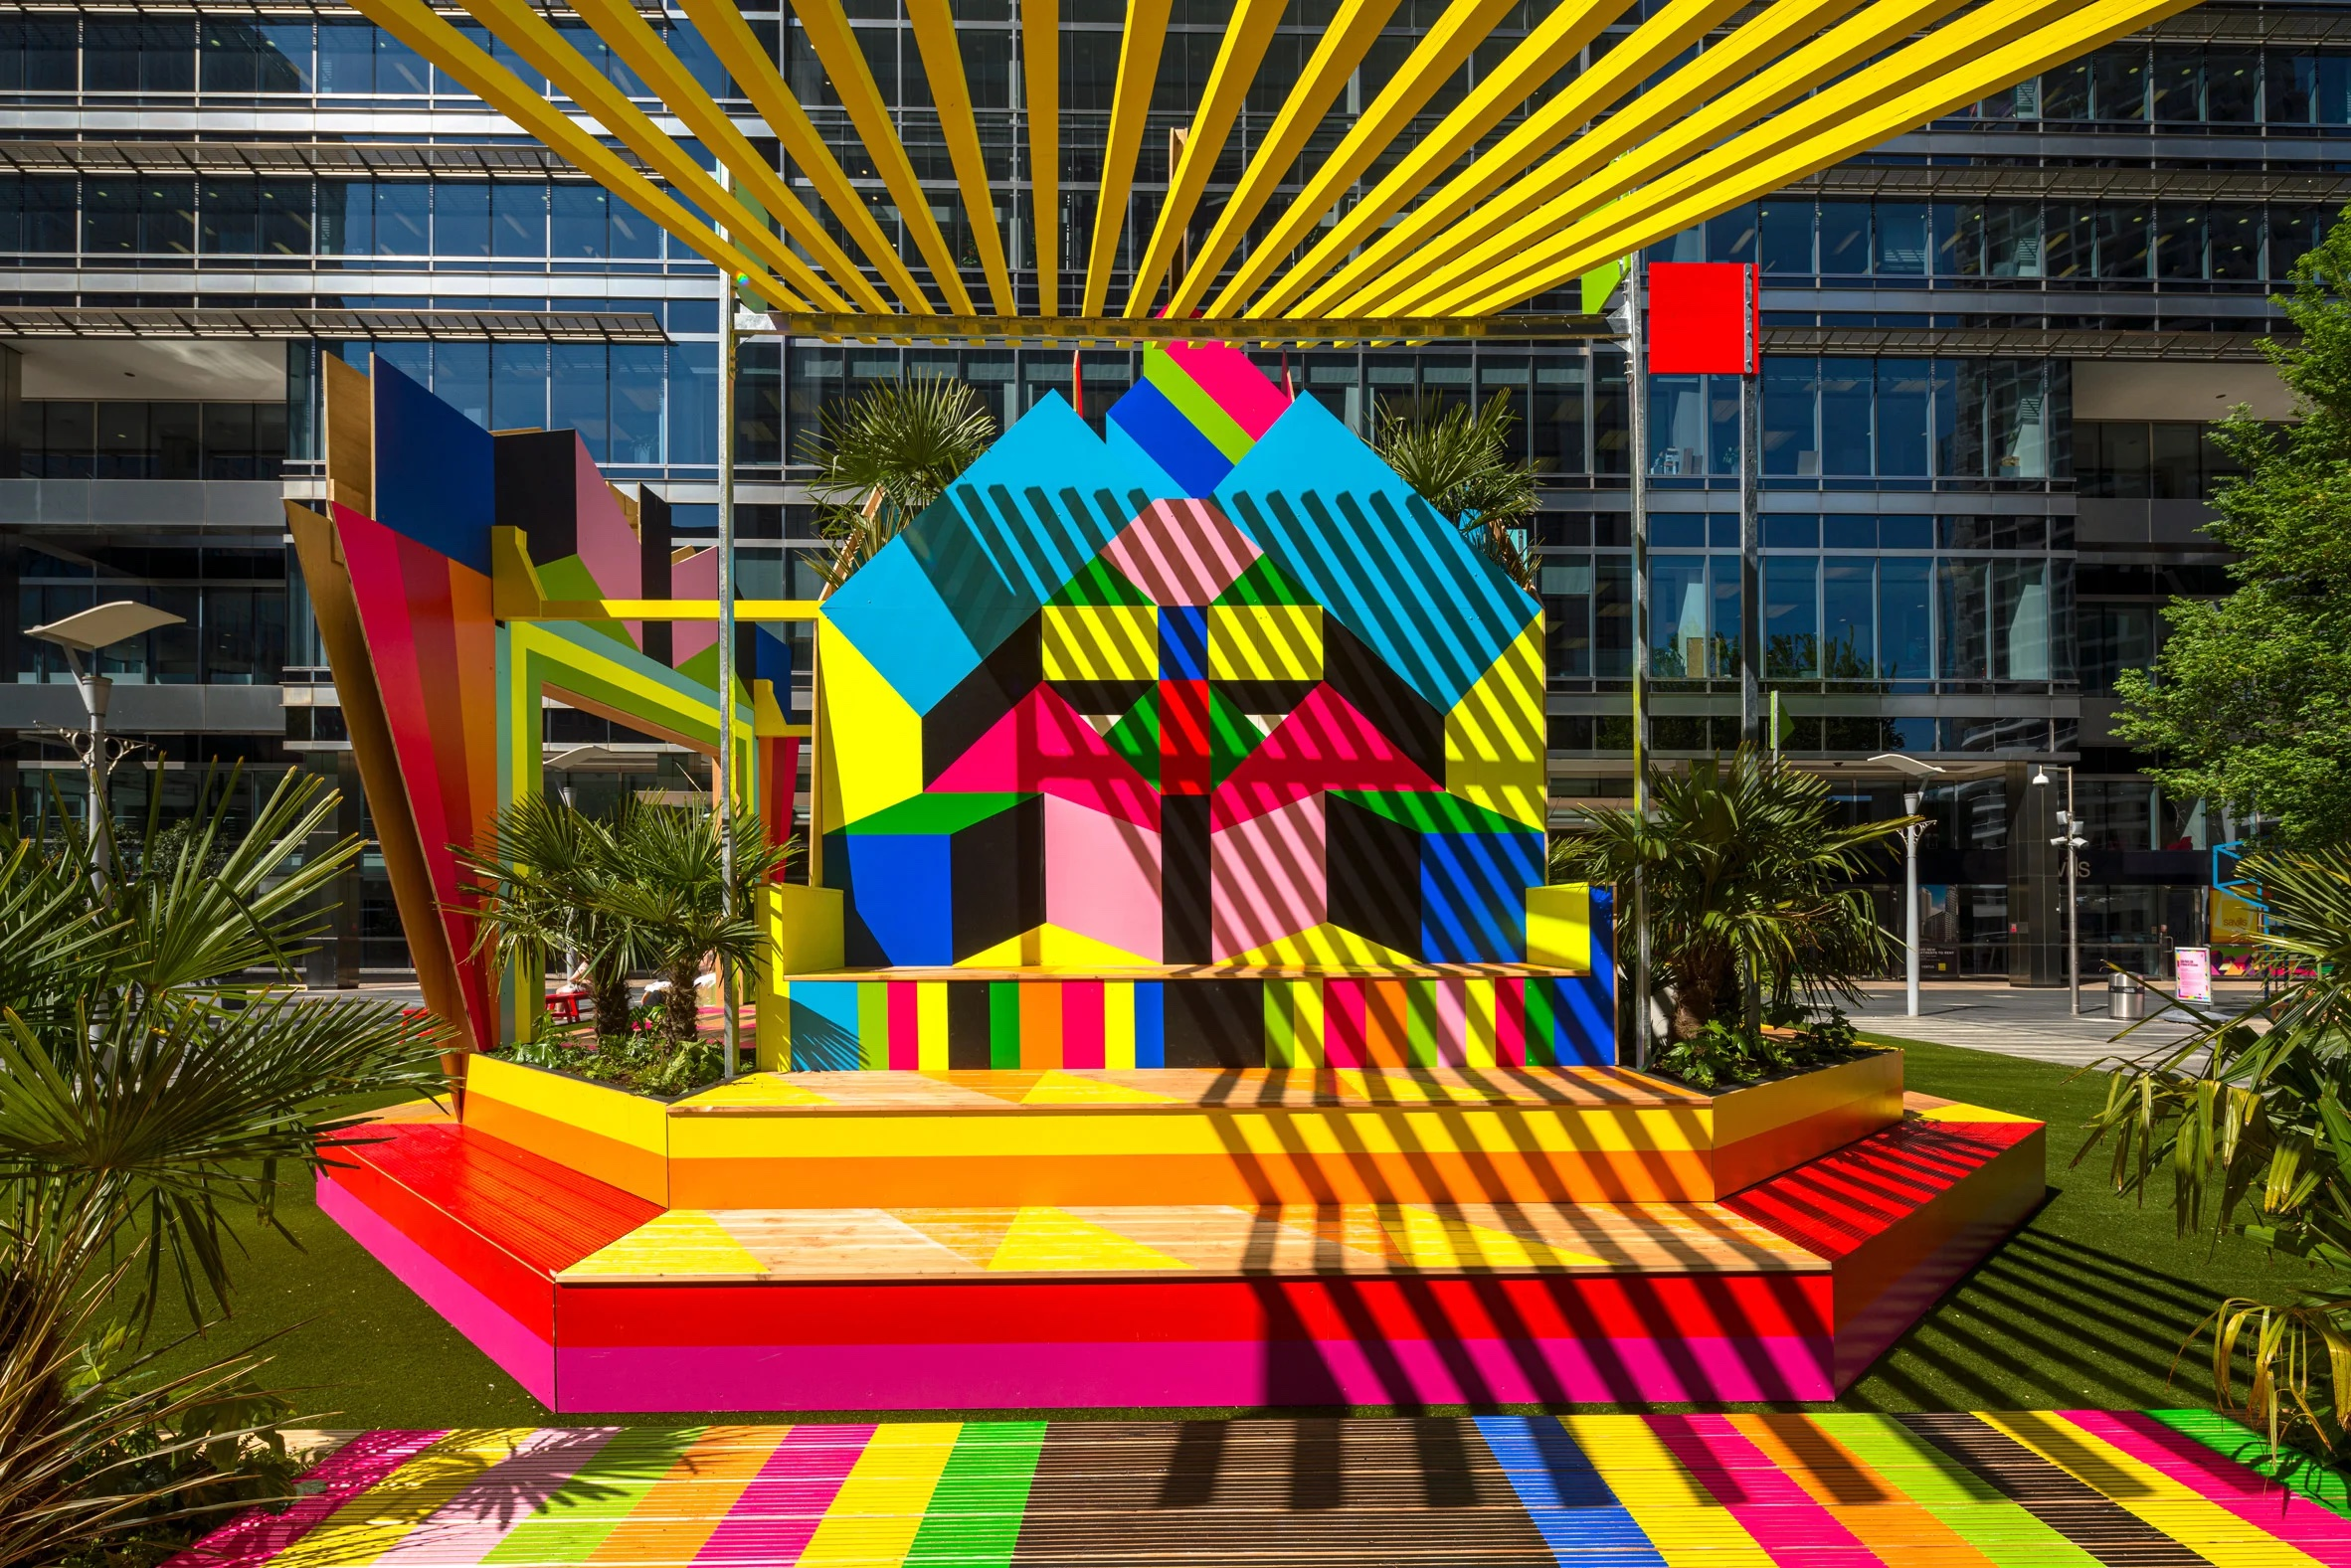 Sun Pavilion introduces Morag Myerscough's trademark neon colours and geometric shapes to London's Montgomery Square.